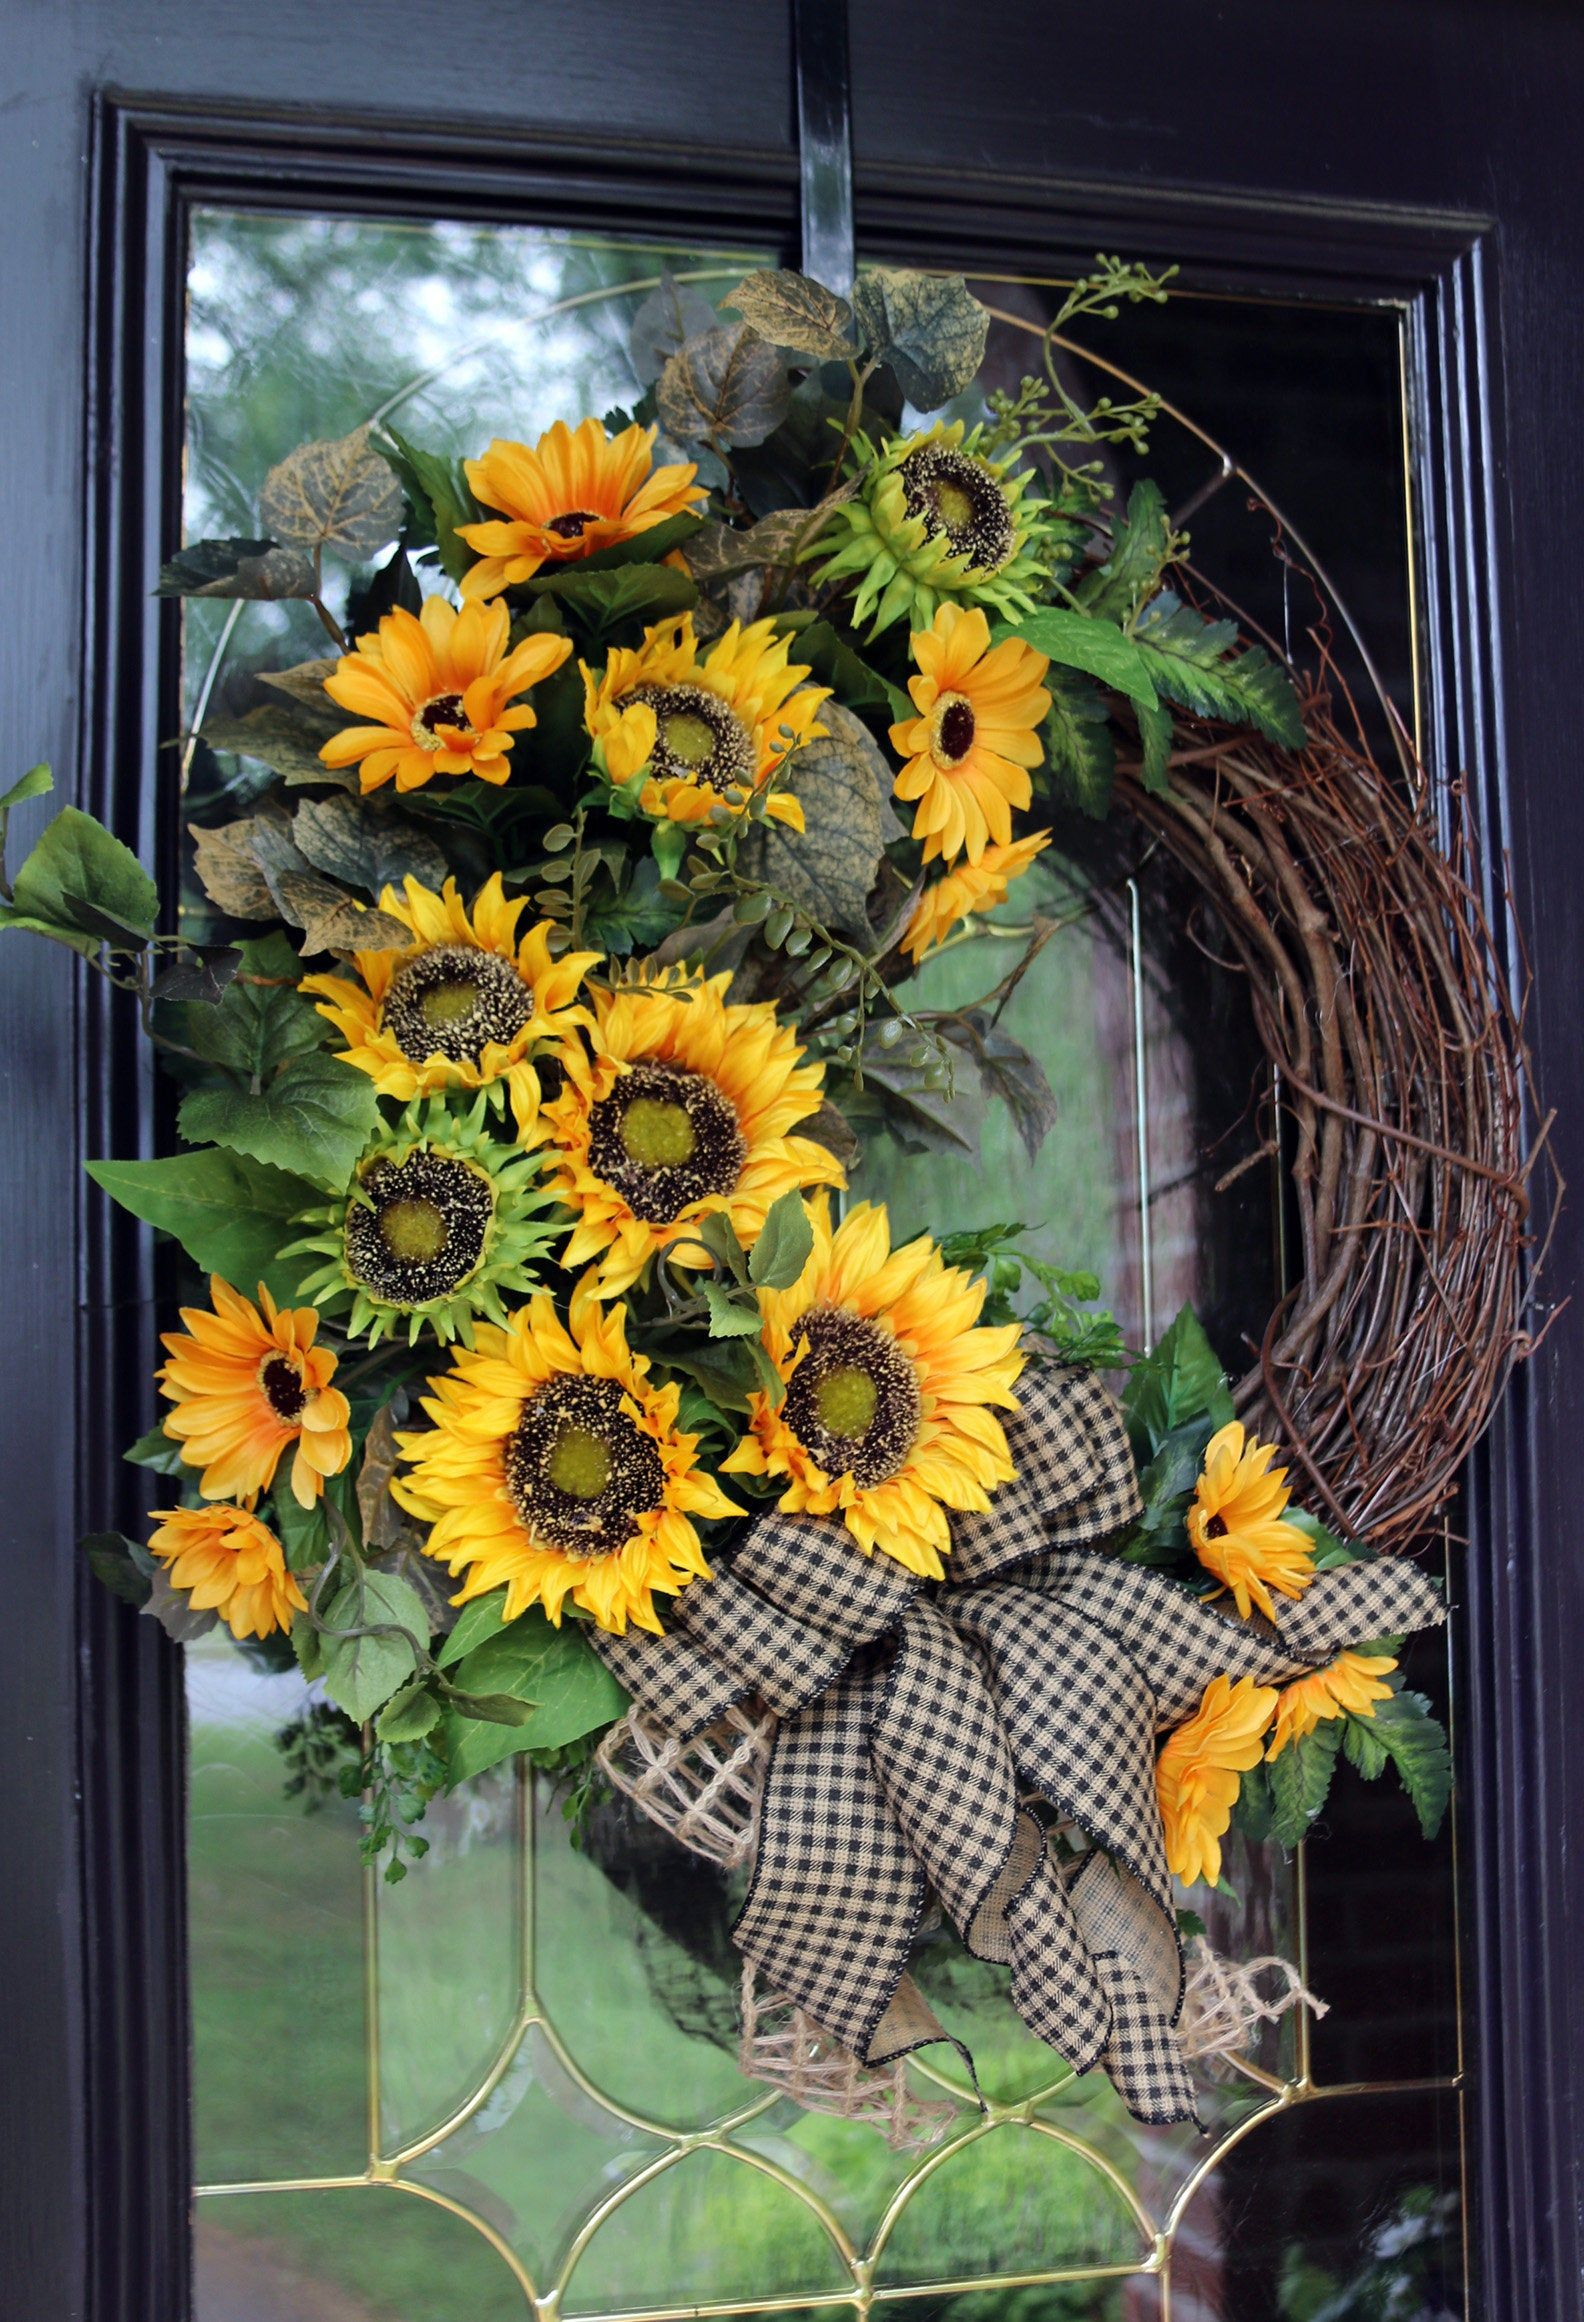 Photo of Sunflower wreath, Primitive Country Spring Wreath for Front Door with Sunflowers, Farmhouse wreath, Farmhouse wreath, Rustic Country Decor